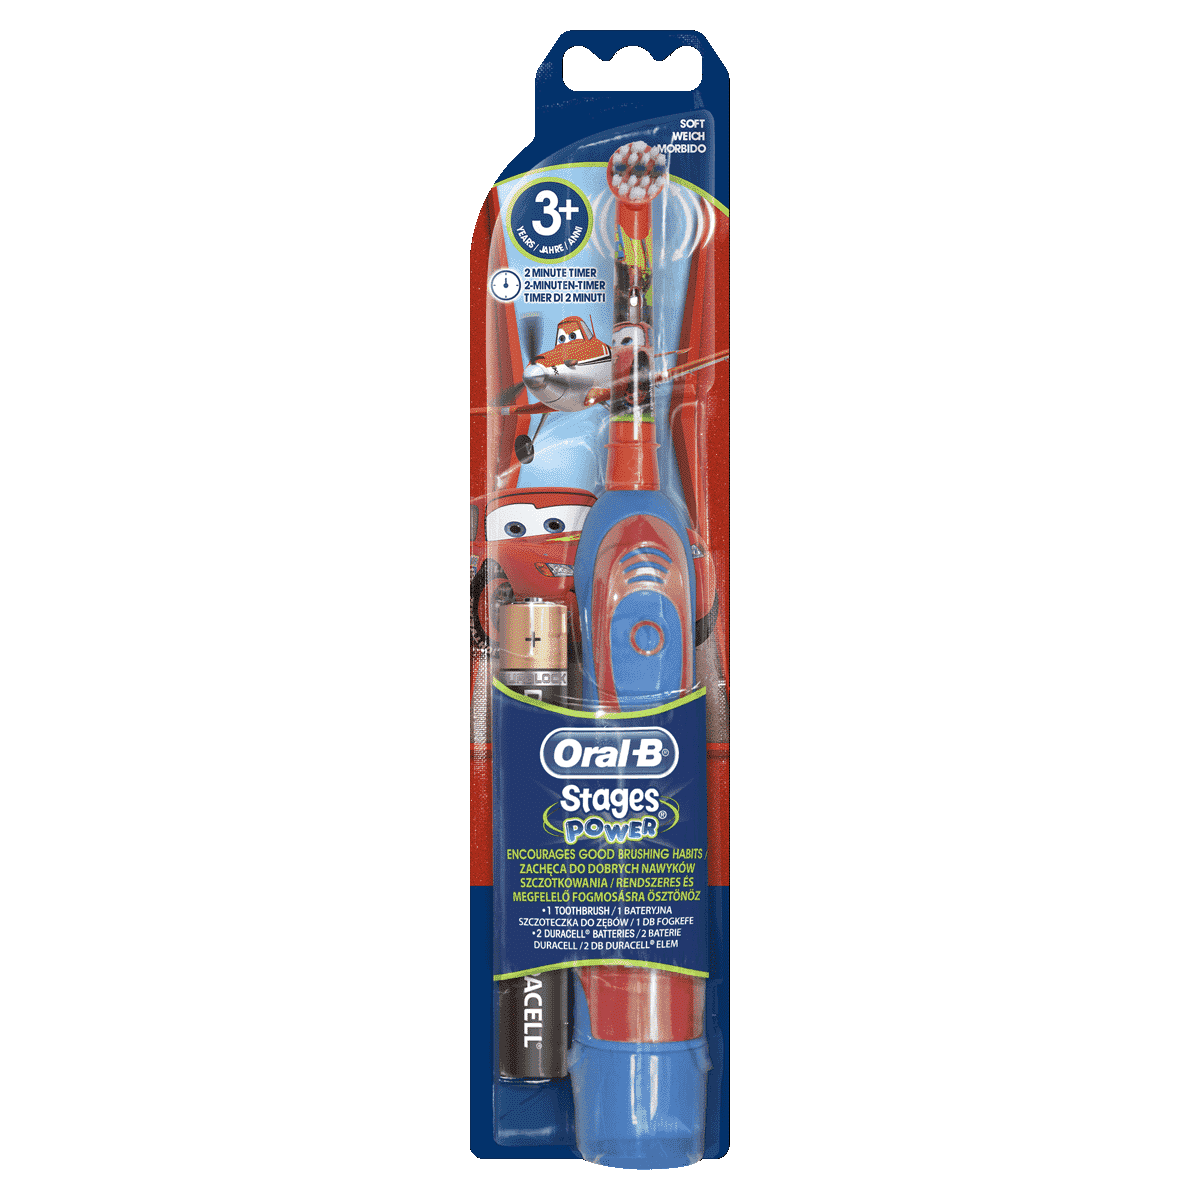 Oral-B Stages Power Kids Battery Toothbrush featuring Disney Cars